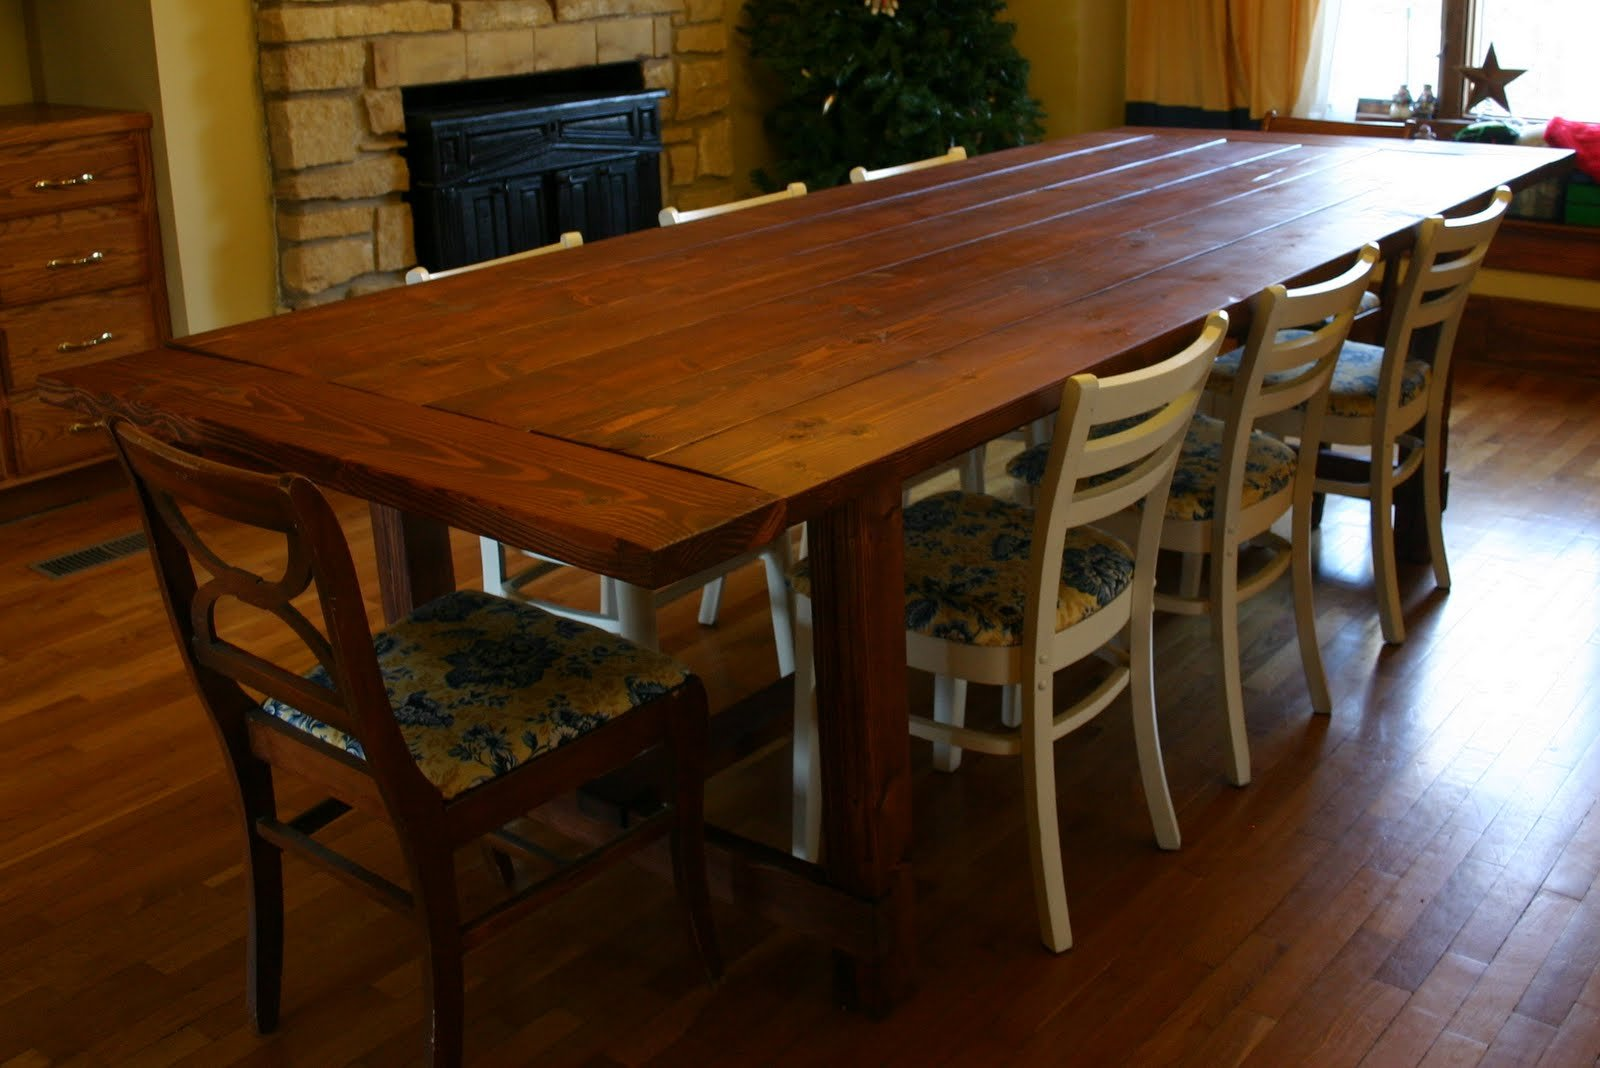 Free dining table plans Photo - 1